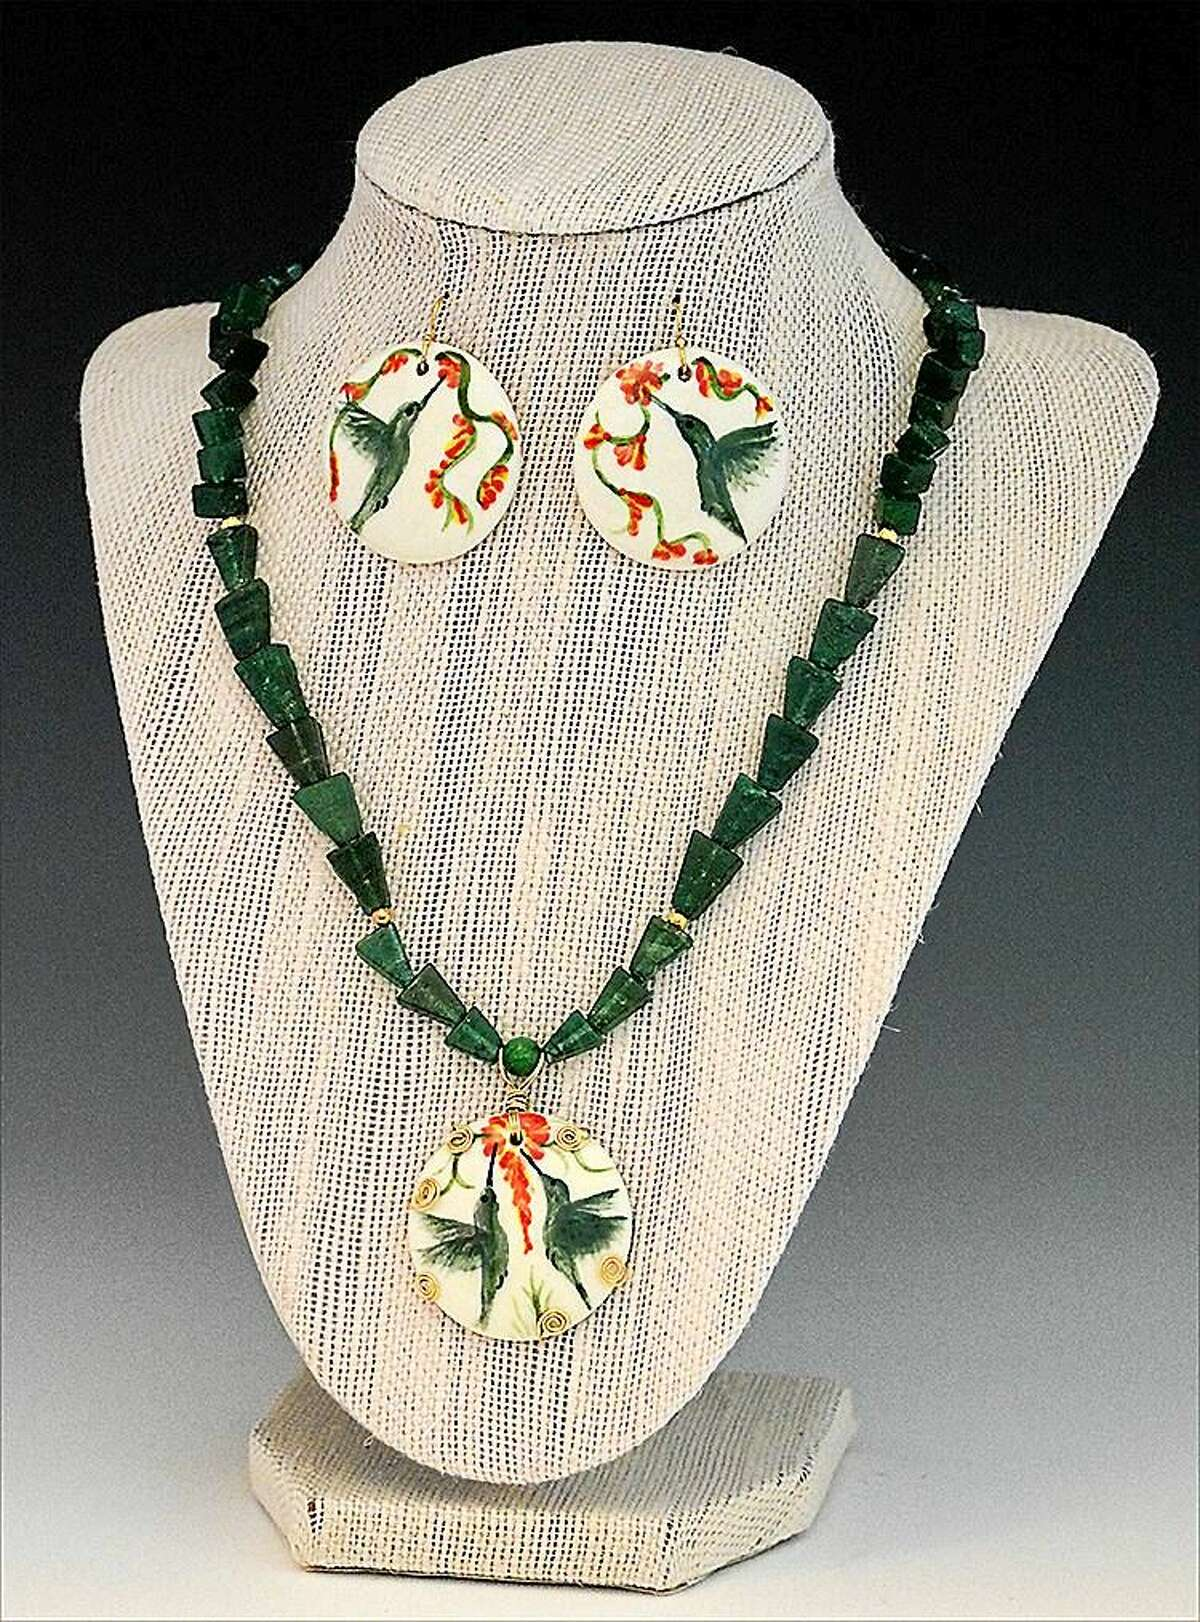 Contributed photo Jewelry by Roxbury ceramic artist Judith Taylor, consisting of hand-painted ceramic hummingbird pendant on aventurine necklace with matching earrings.